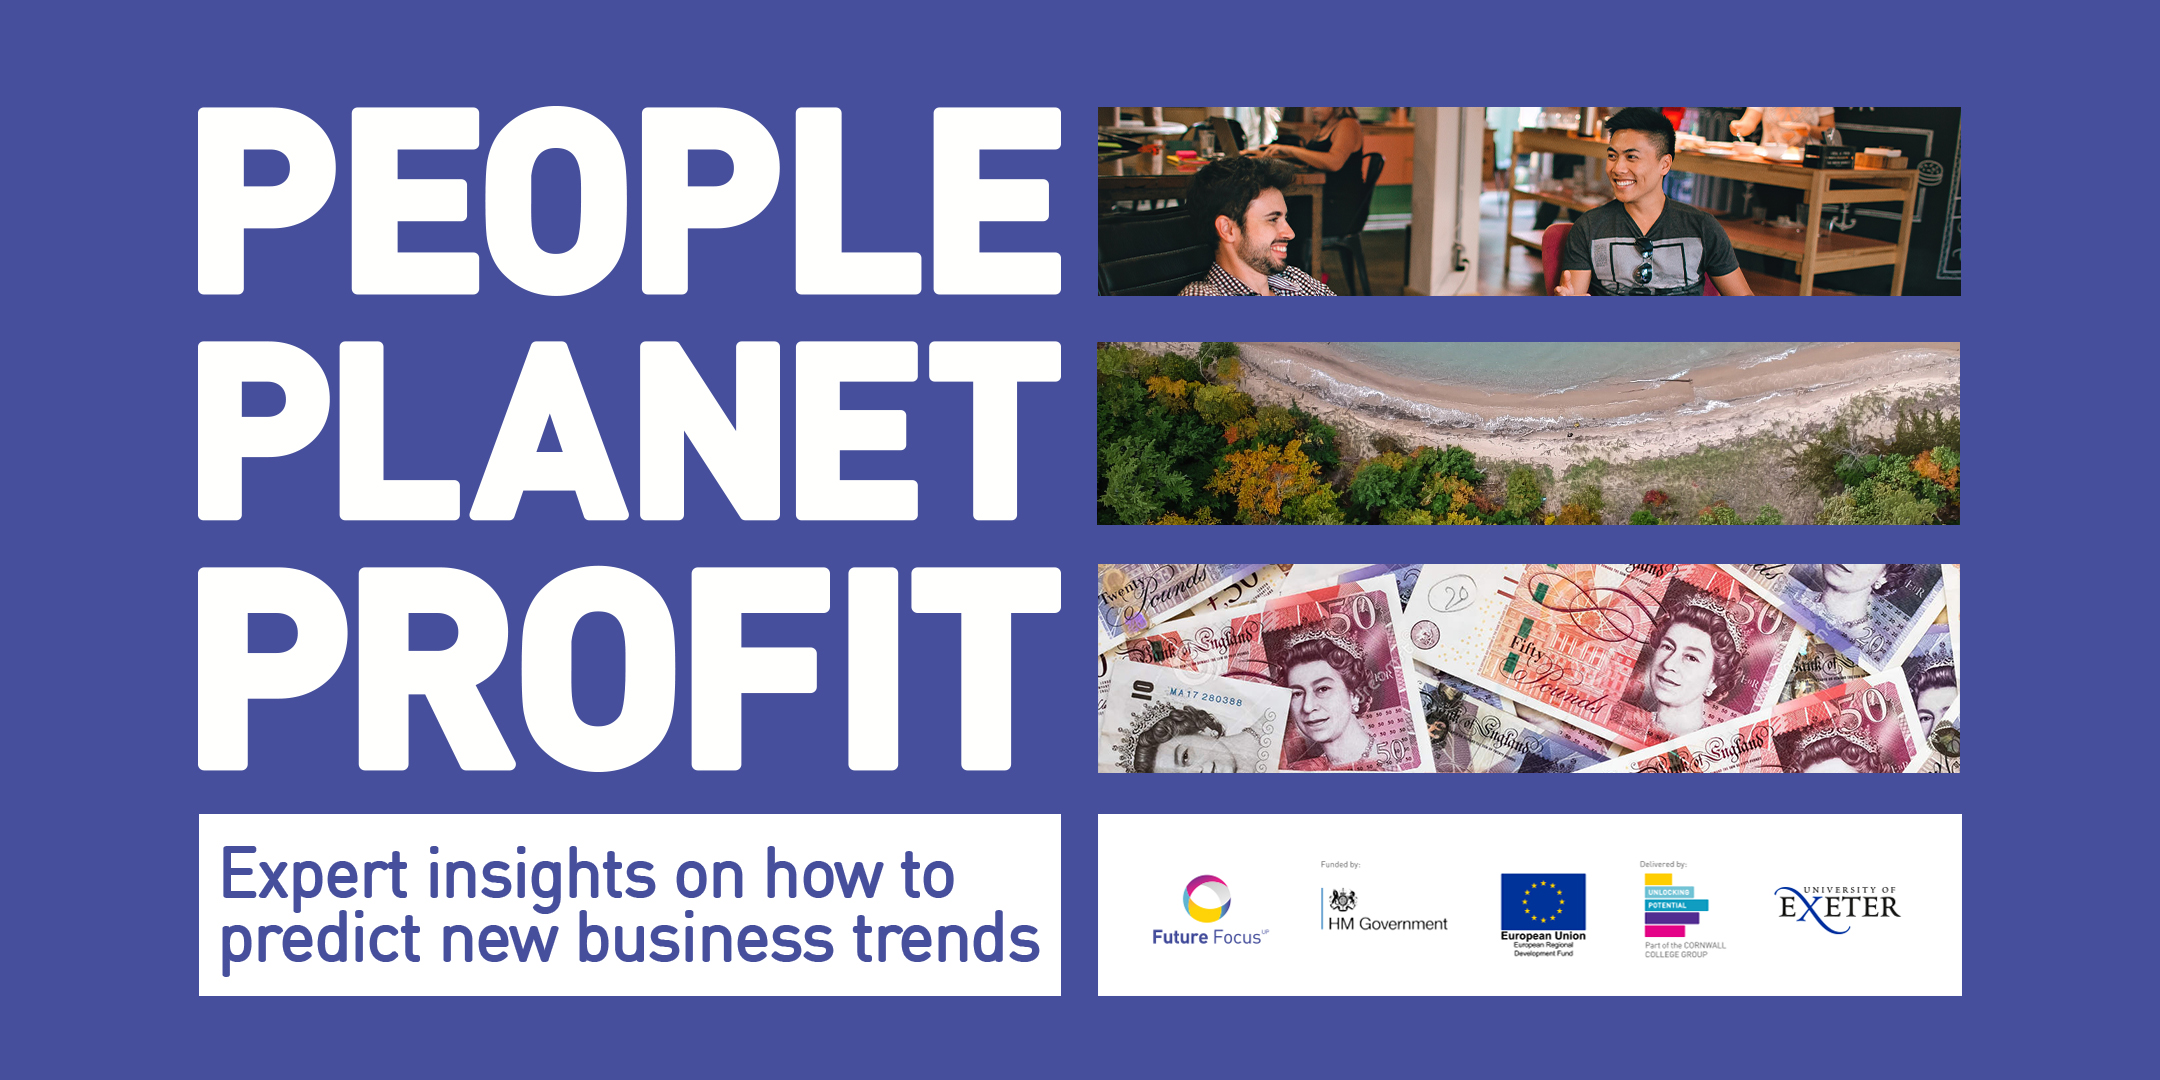 People Planet Profit Future Focus Dr Allen Alexander